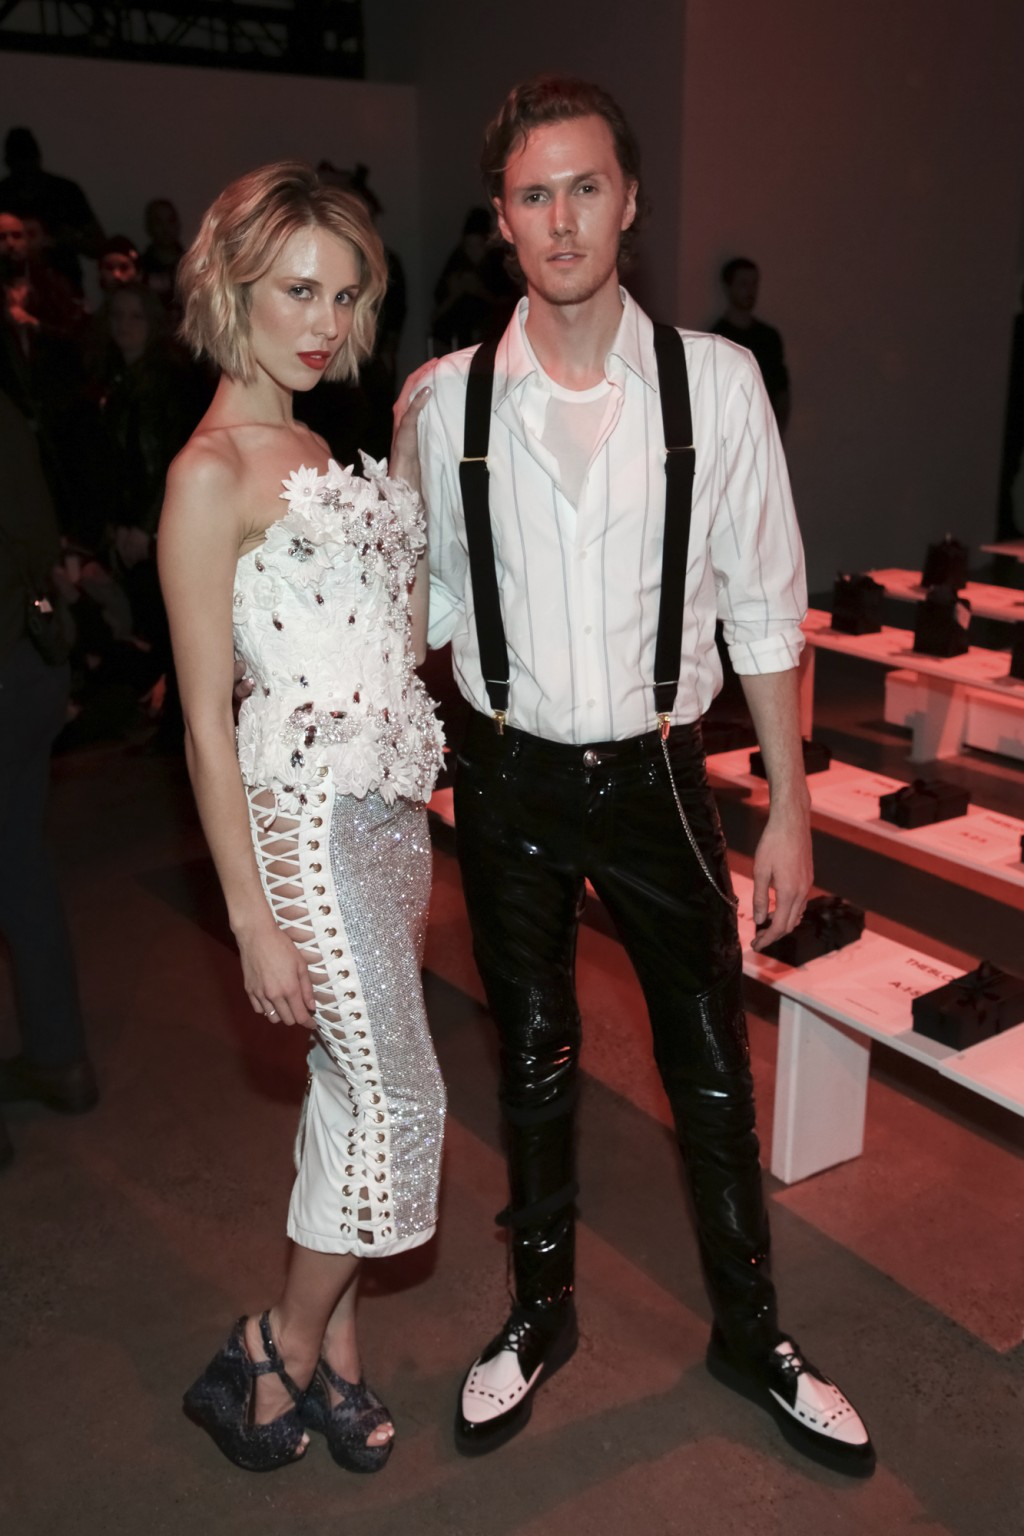 Tessa Hilton, left, and Barron Hilton II attend The Blonds Runway Show held at Spring Studios during New York Fashion Week on Tuesday, Feb. 12, 2019 i...